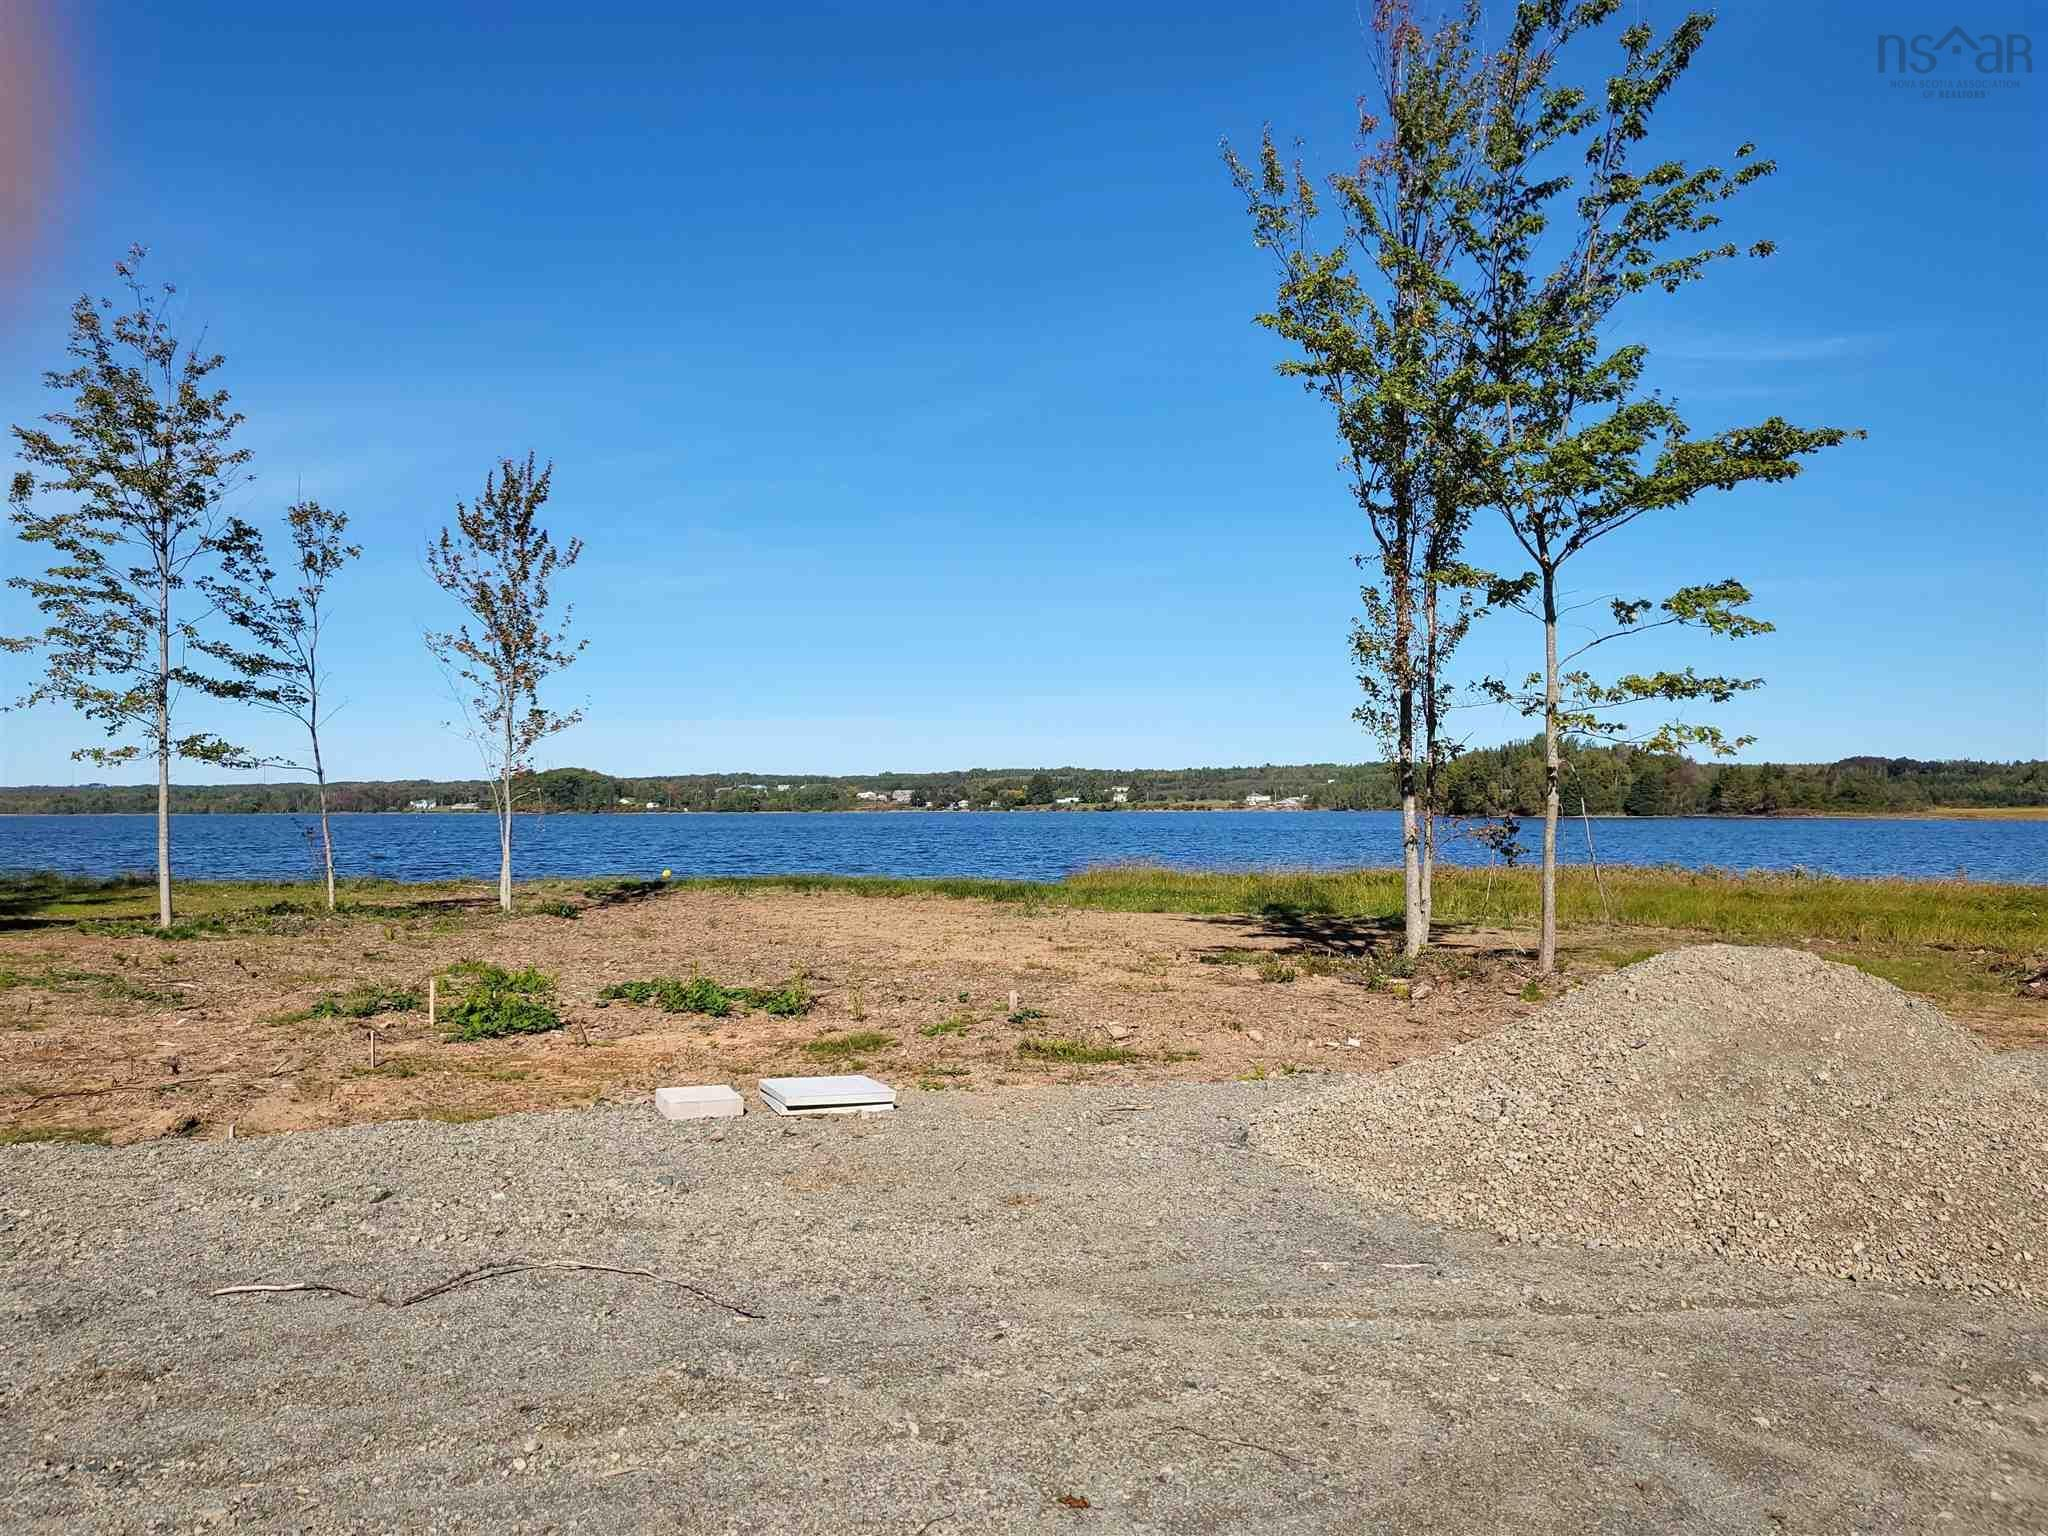 Main Photo: LOT 2005-1 ISLAND ROAD EXTENSION in Malagash: 103-Malagash, Wentworth Vacant Land for sale (Northern Region)  : MLS®# 202125888